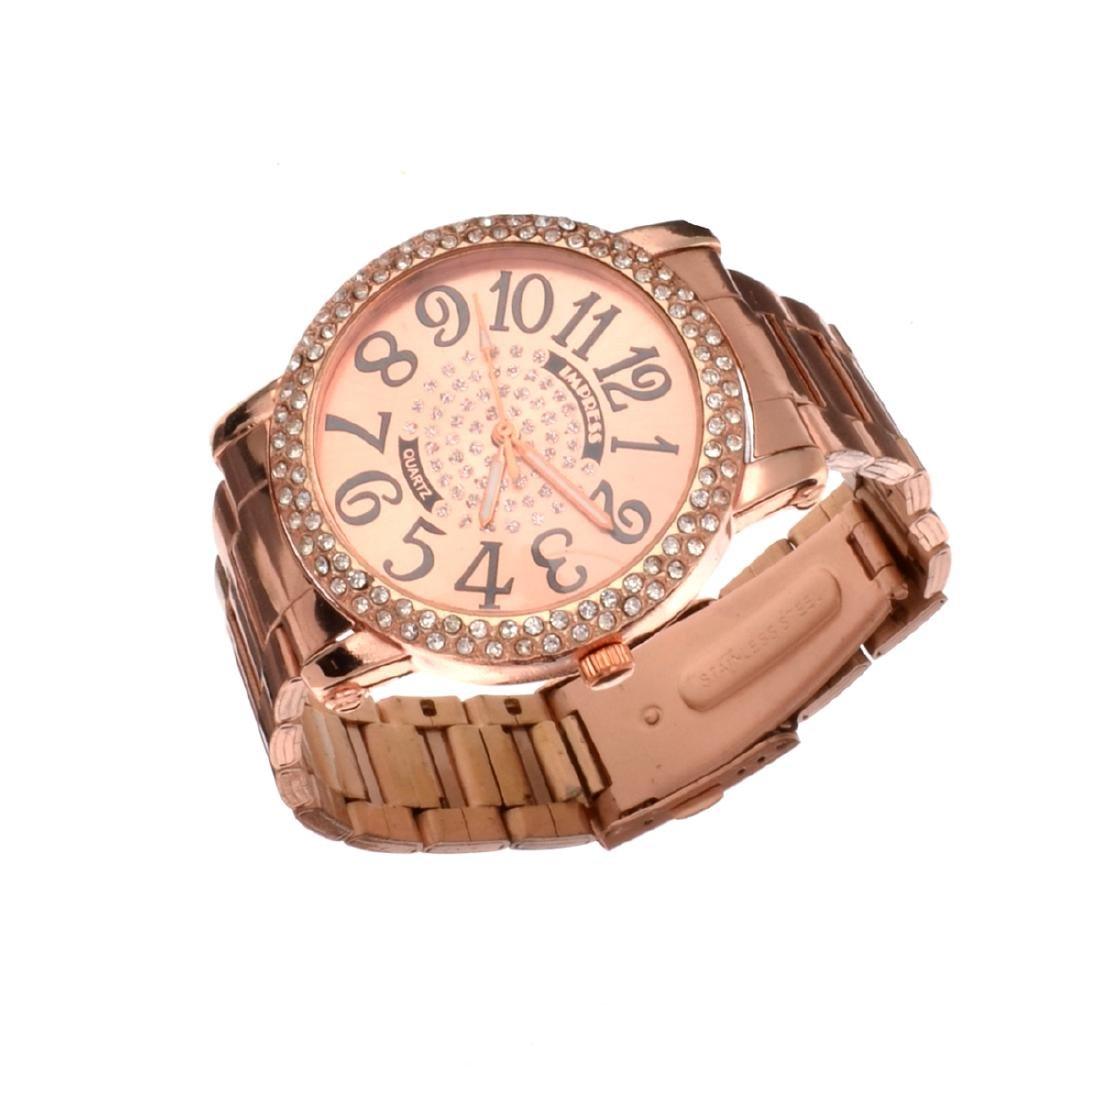 Impress, Mickel Kors Look Ladies Watch